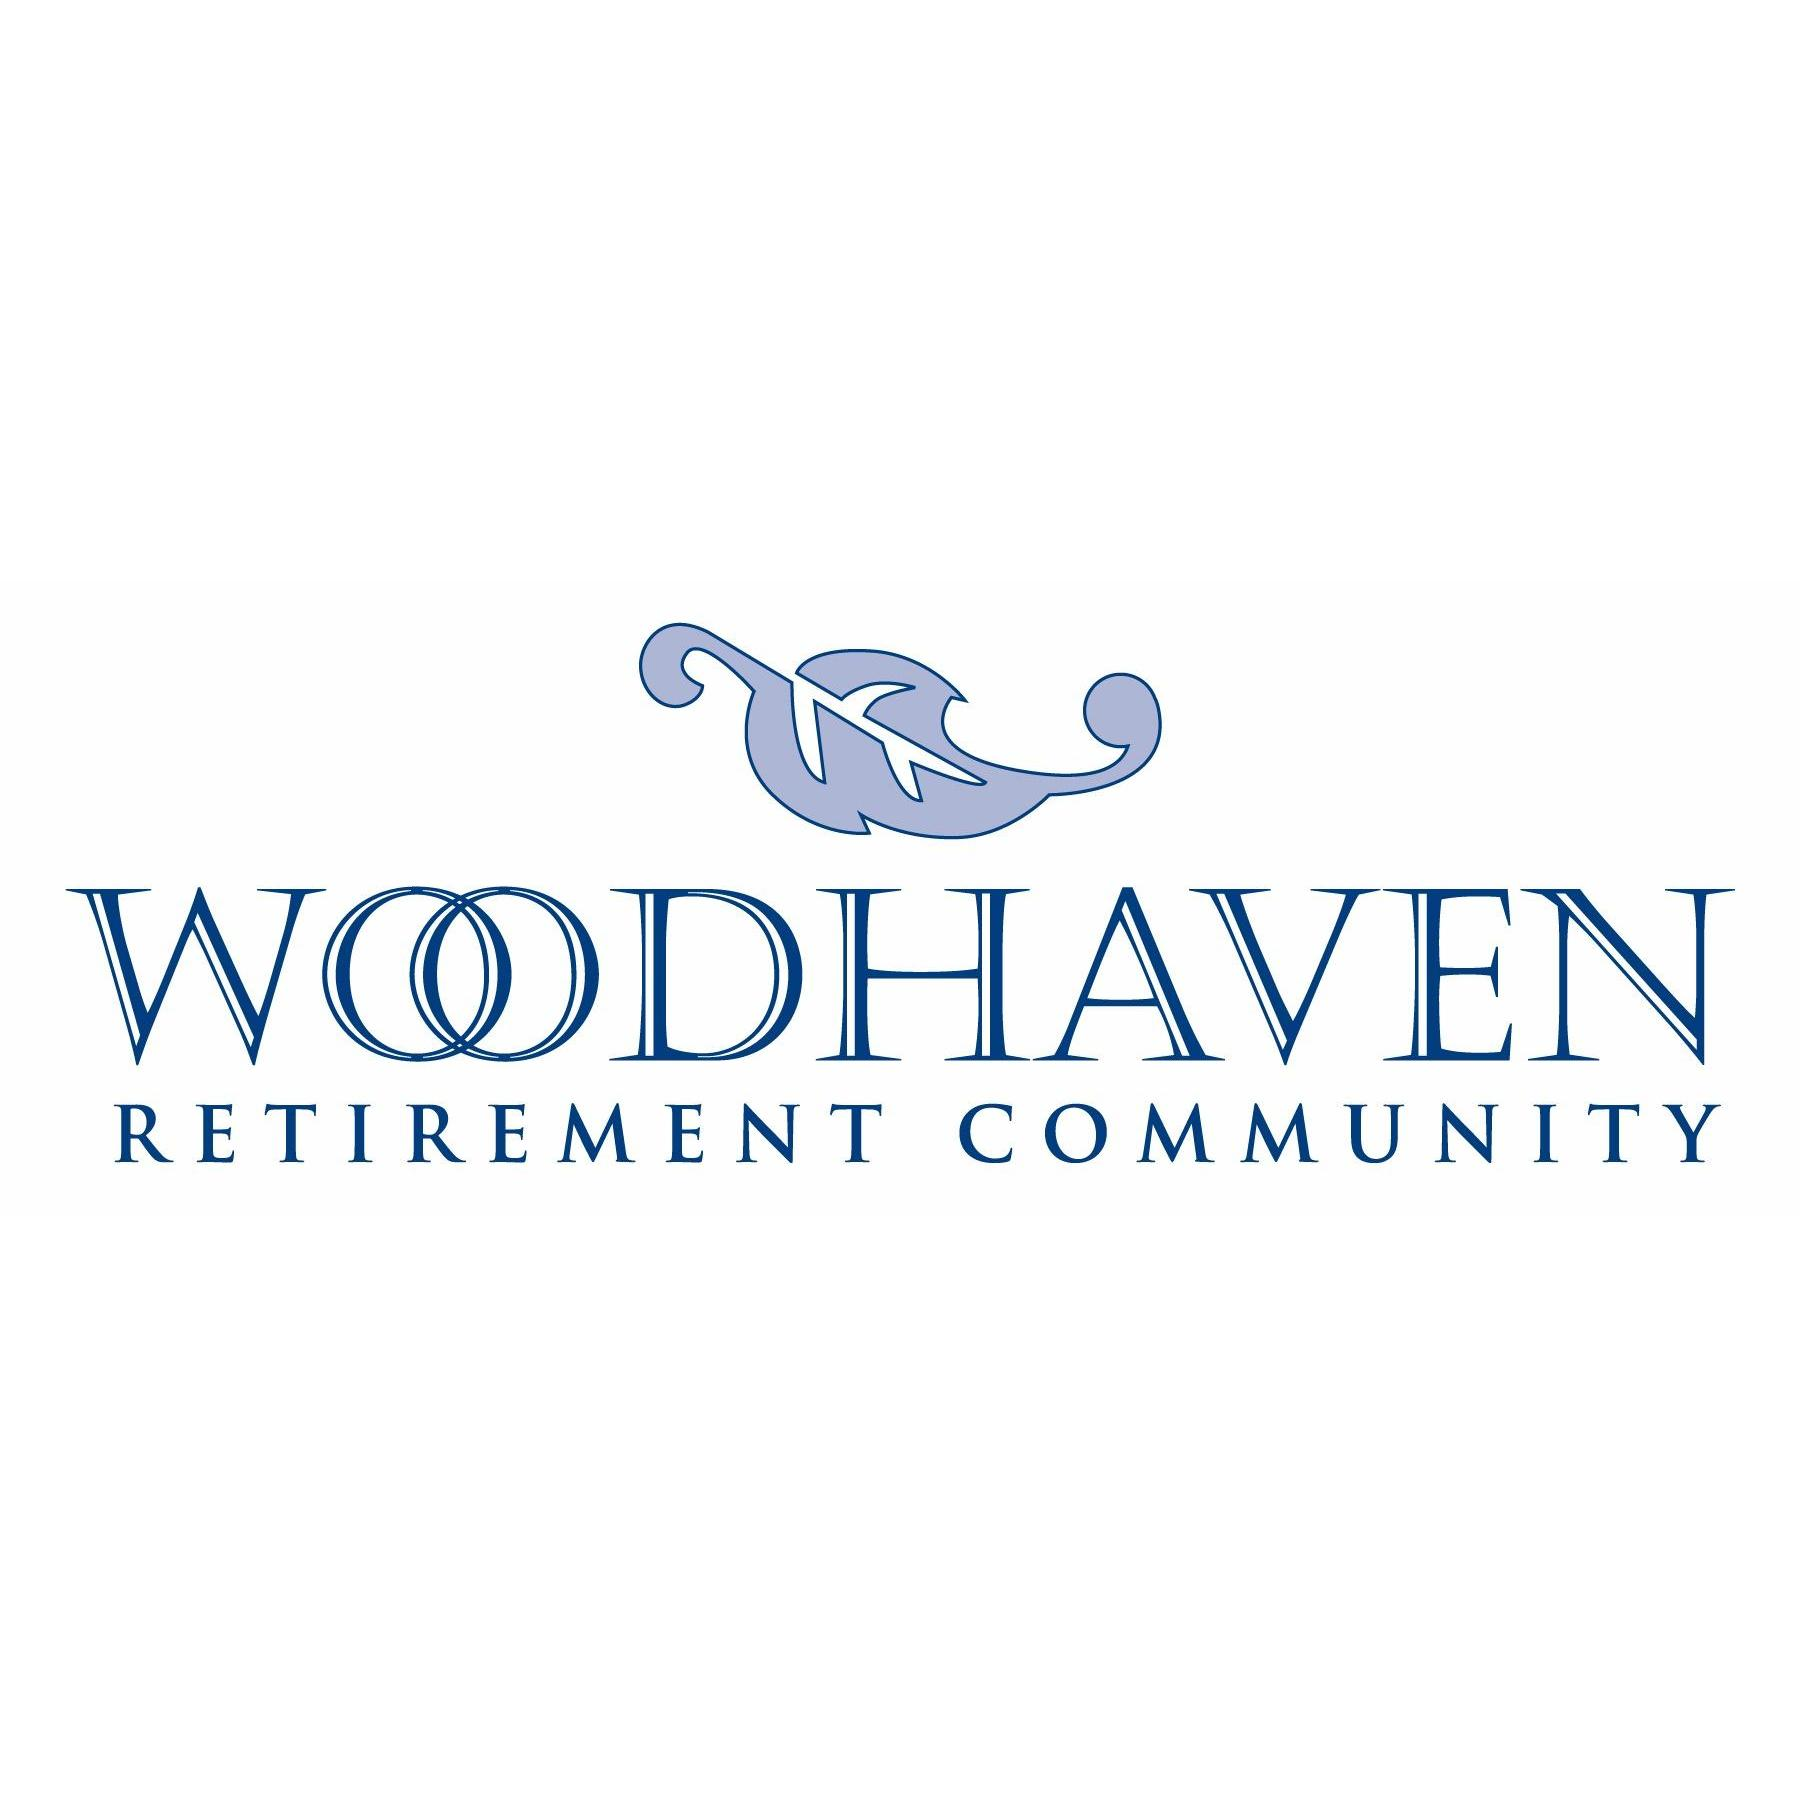 Woodhaven Retirement Community